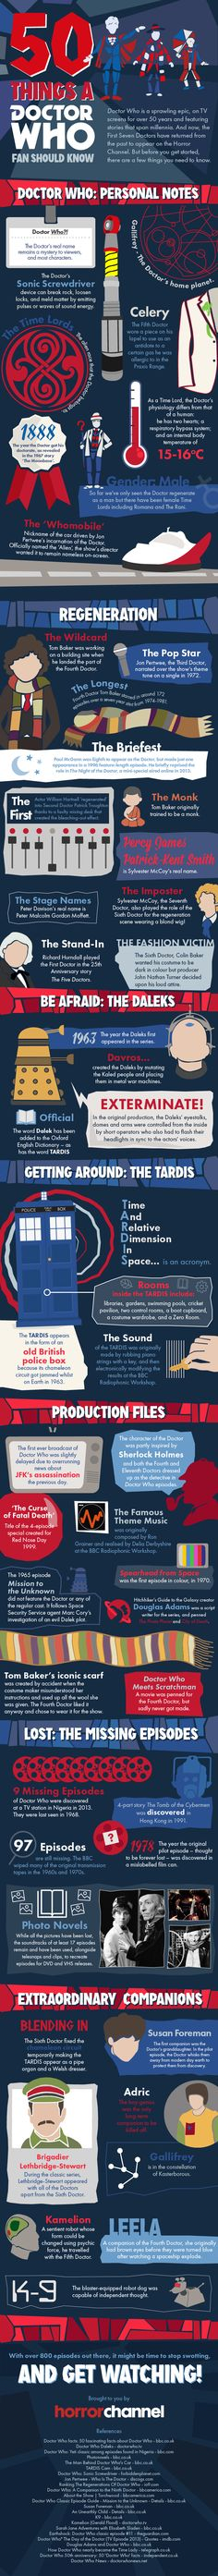 50 Things Every Doctor Who Fan Should Know